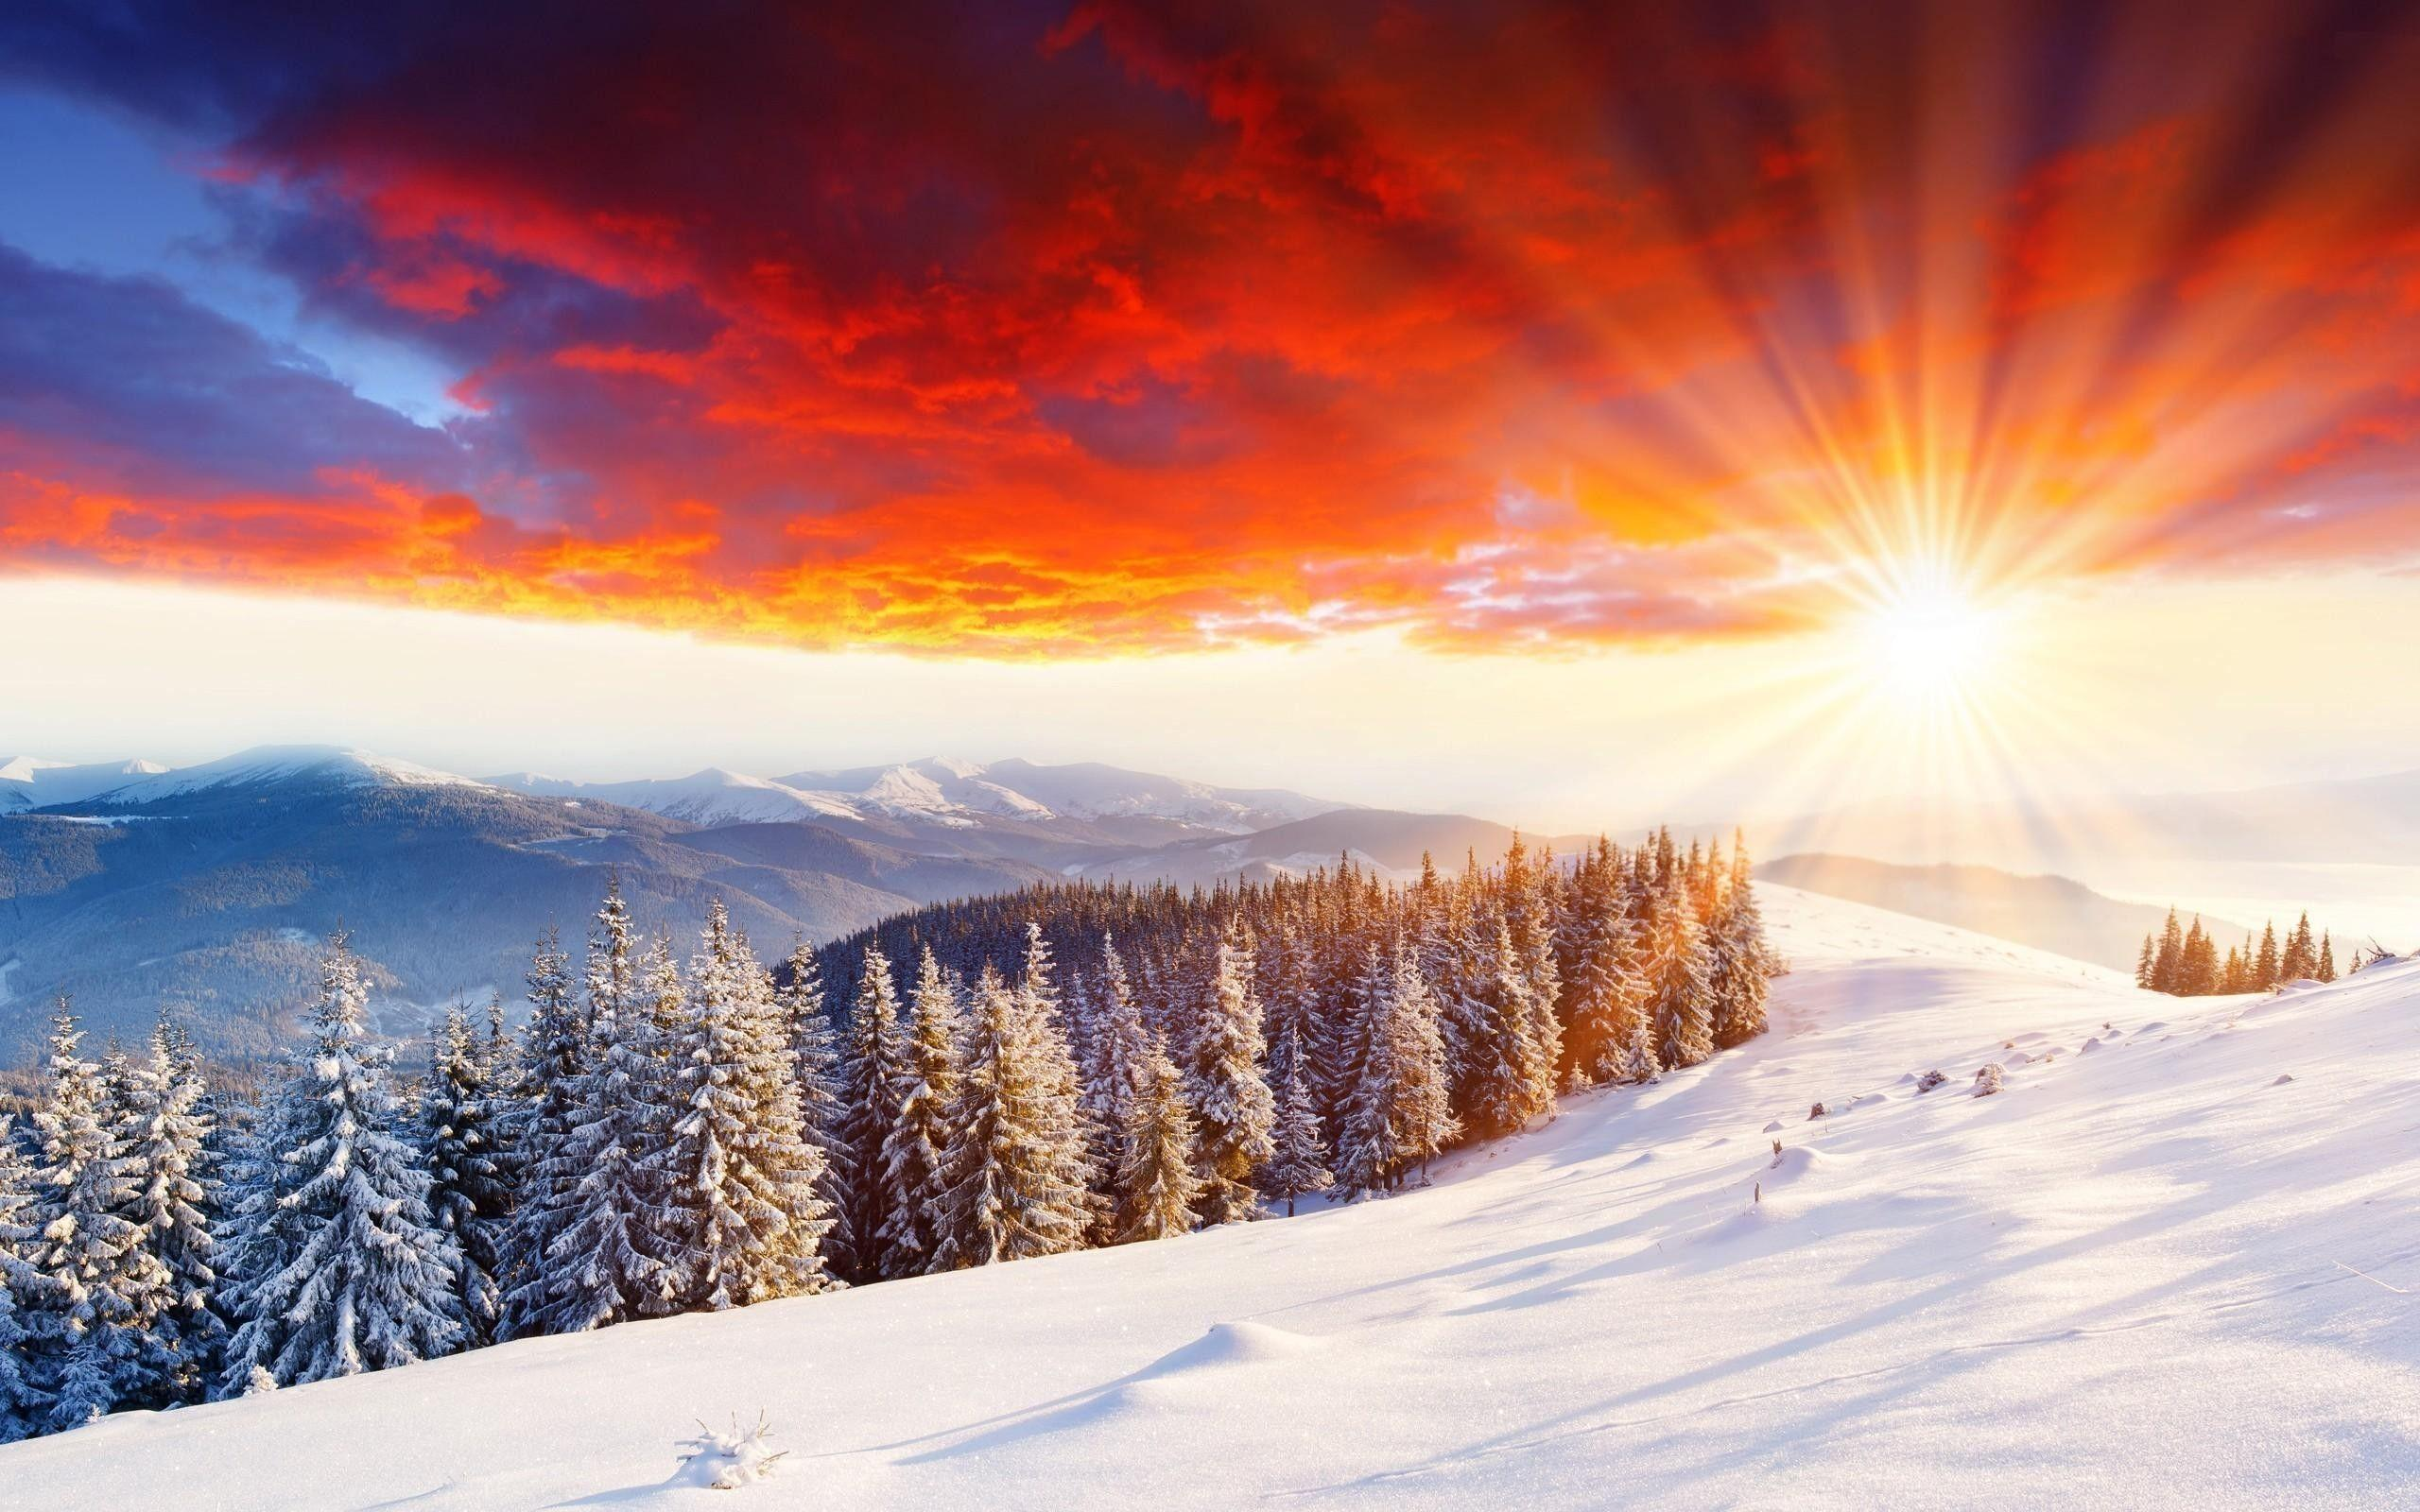 Snow scene wallpapers wallpaper cave snowy winter scenes wallpaper 44 images voltagebd Image collections